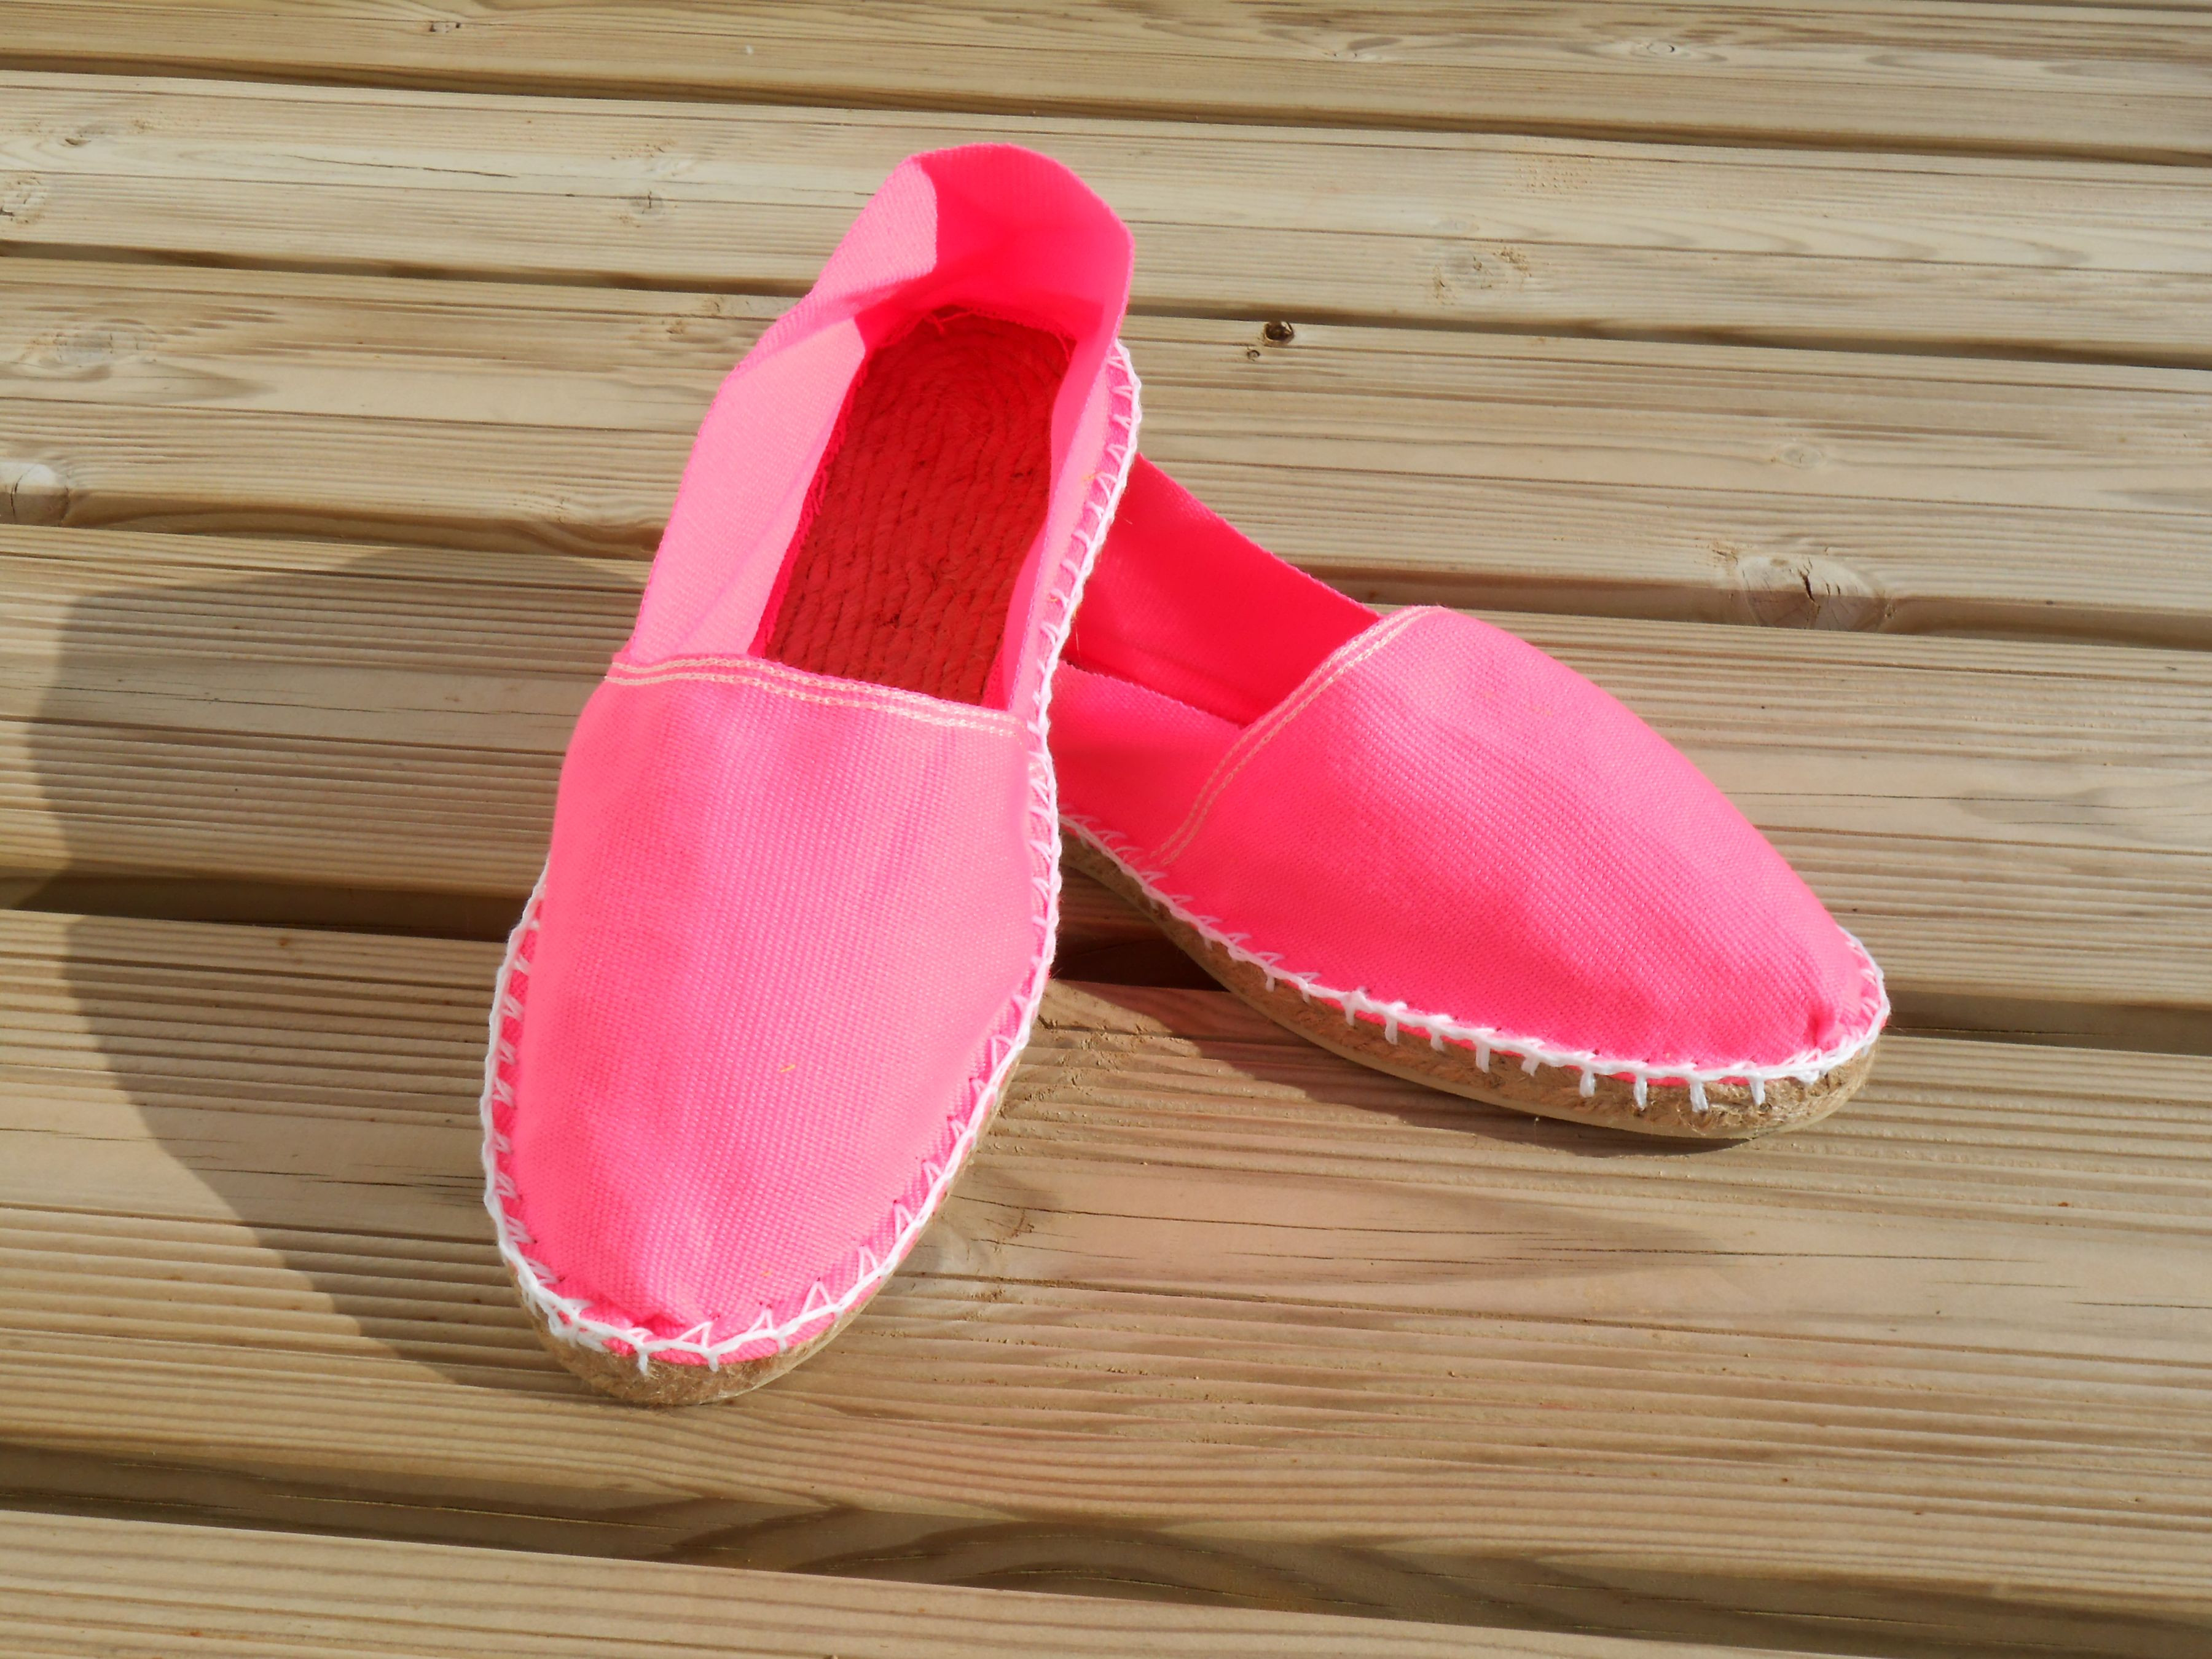 Espadrilles basques rose fluo taille 37